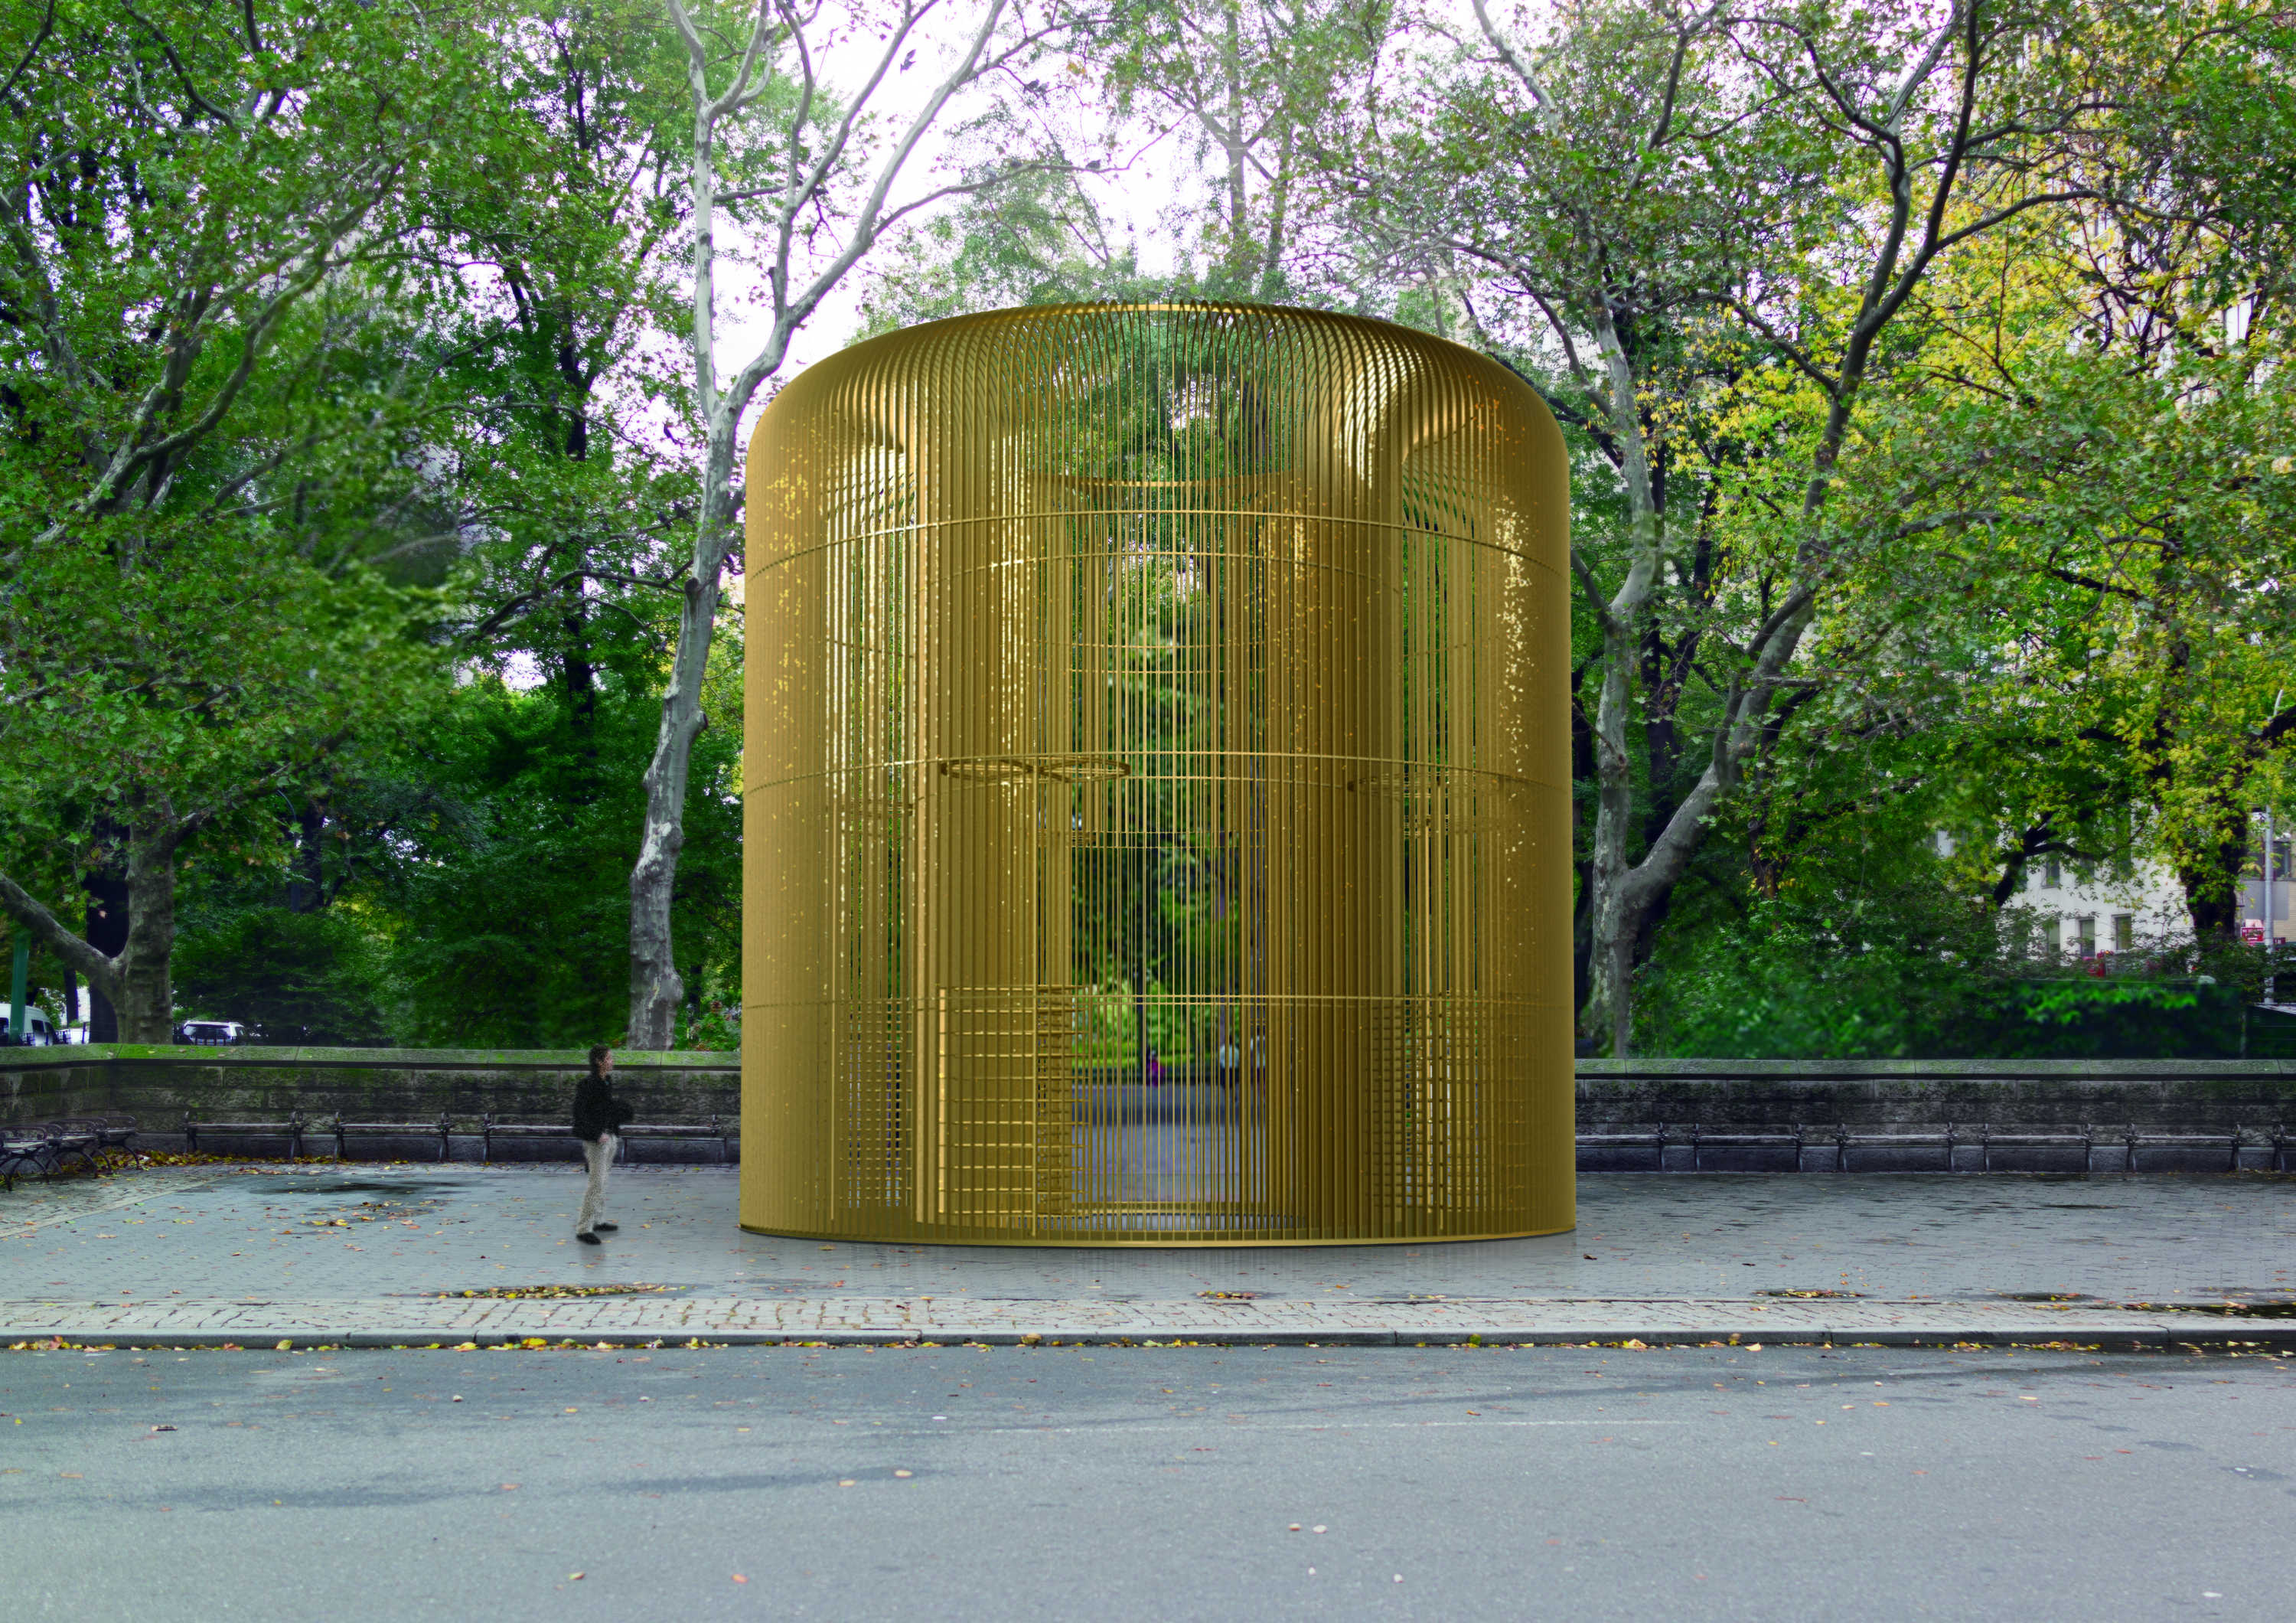 A proposed design for a large golden cage at Doris C. Freedman Places at Central Park.